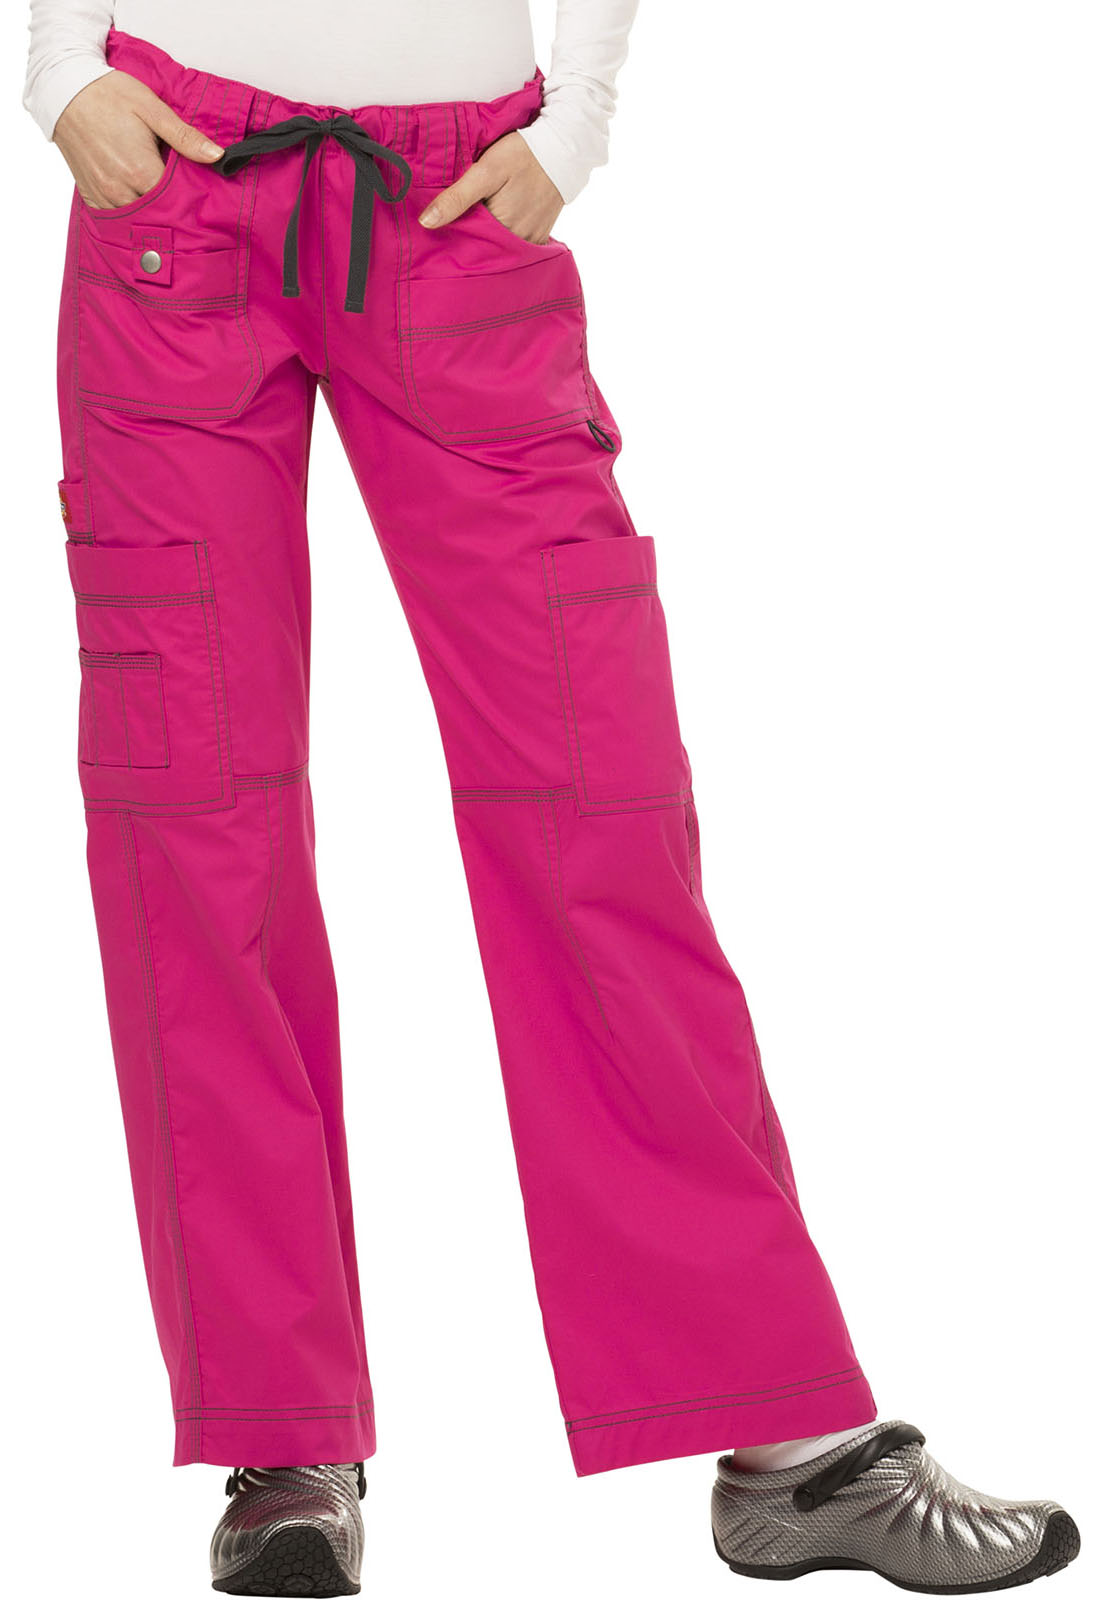 0f98cd01091 Gen Flex Low Rise Drawstring Cargo Pant in Hot Pink 857455-HPKZ from ...